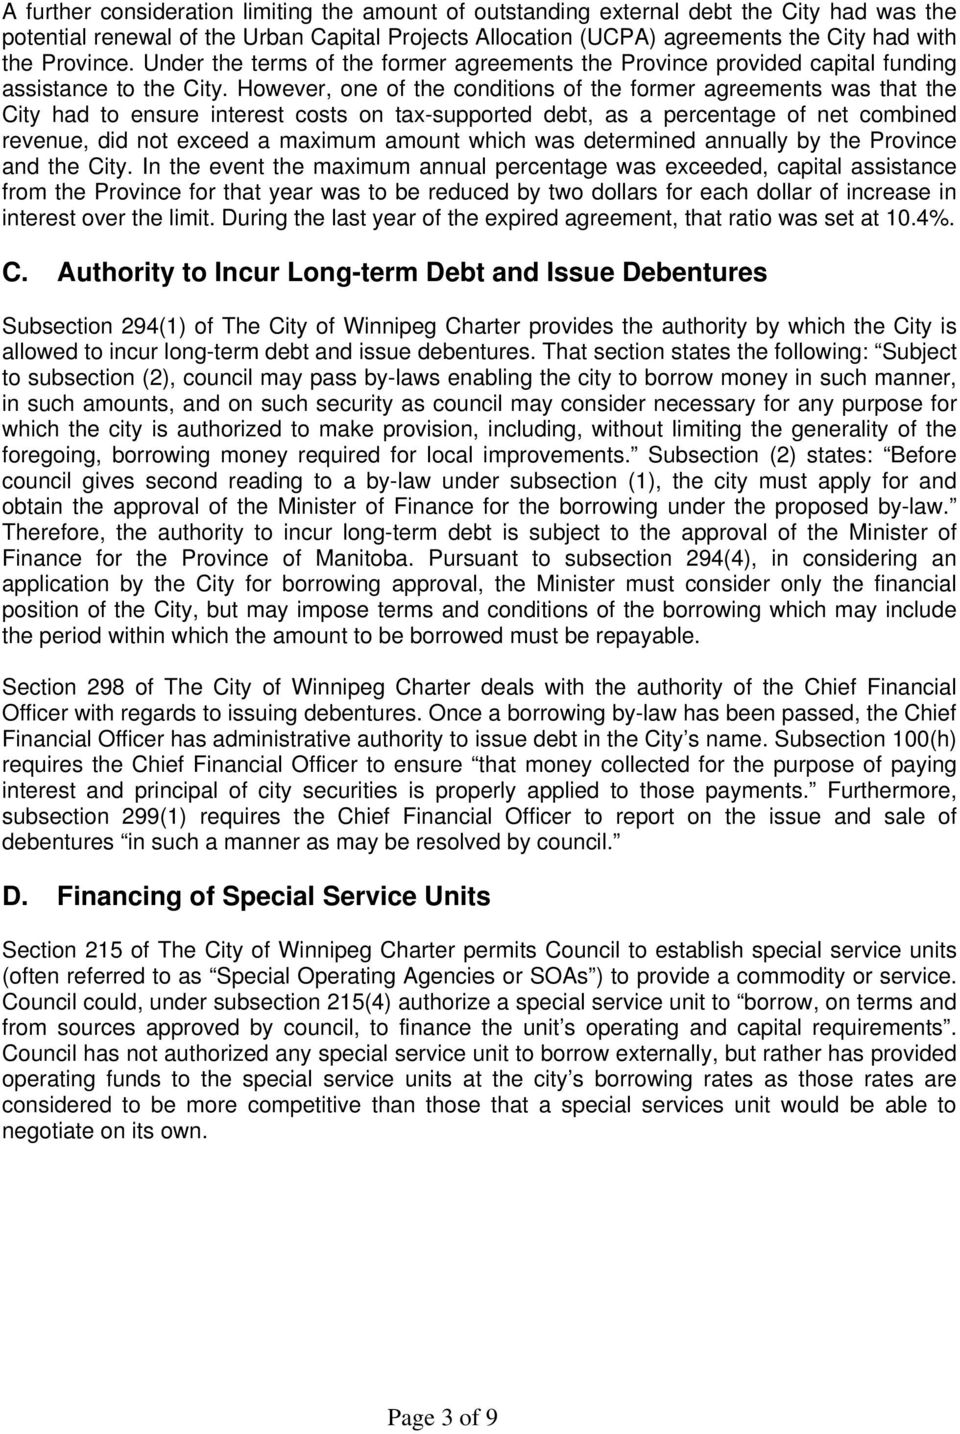 However, one of the conditions of the former agreements was that the City had to ensure interest costs on tax-supported debt, as a percentage of net combined revenue, did not exceed a maximum amount